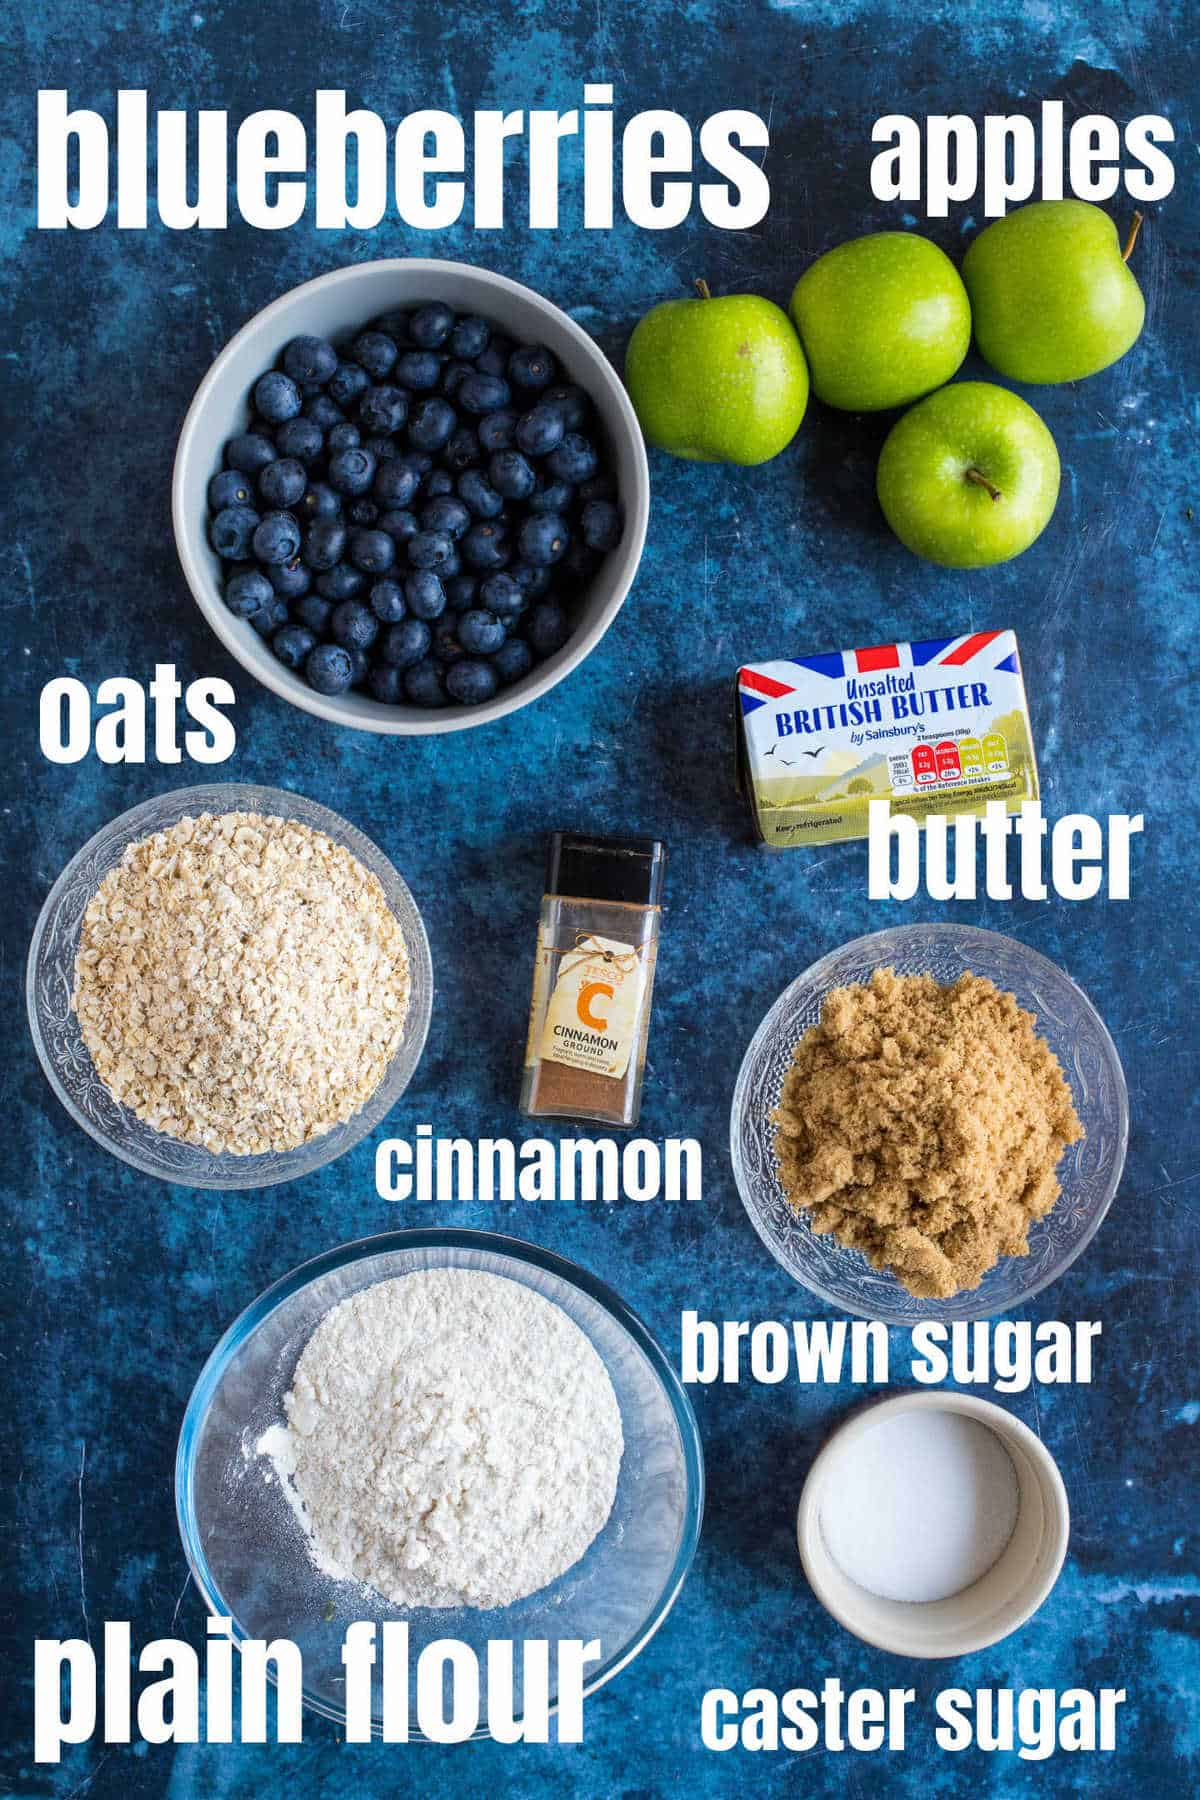 Ingredients needed to make the apple and blueberry crumble.